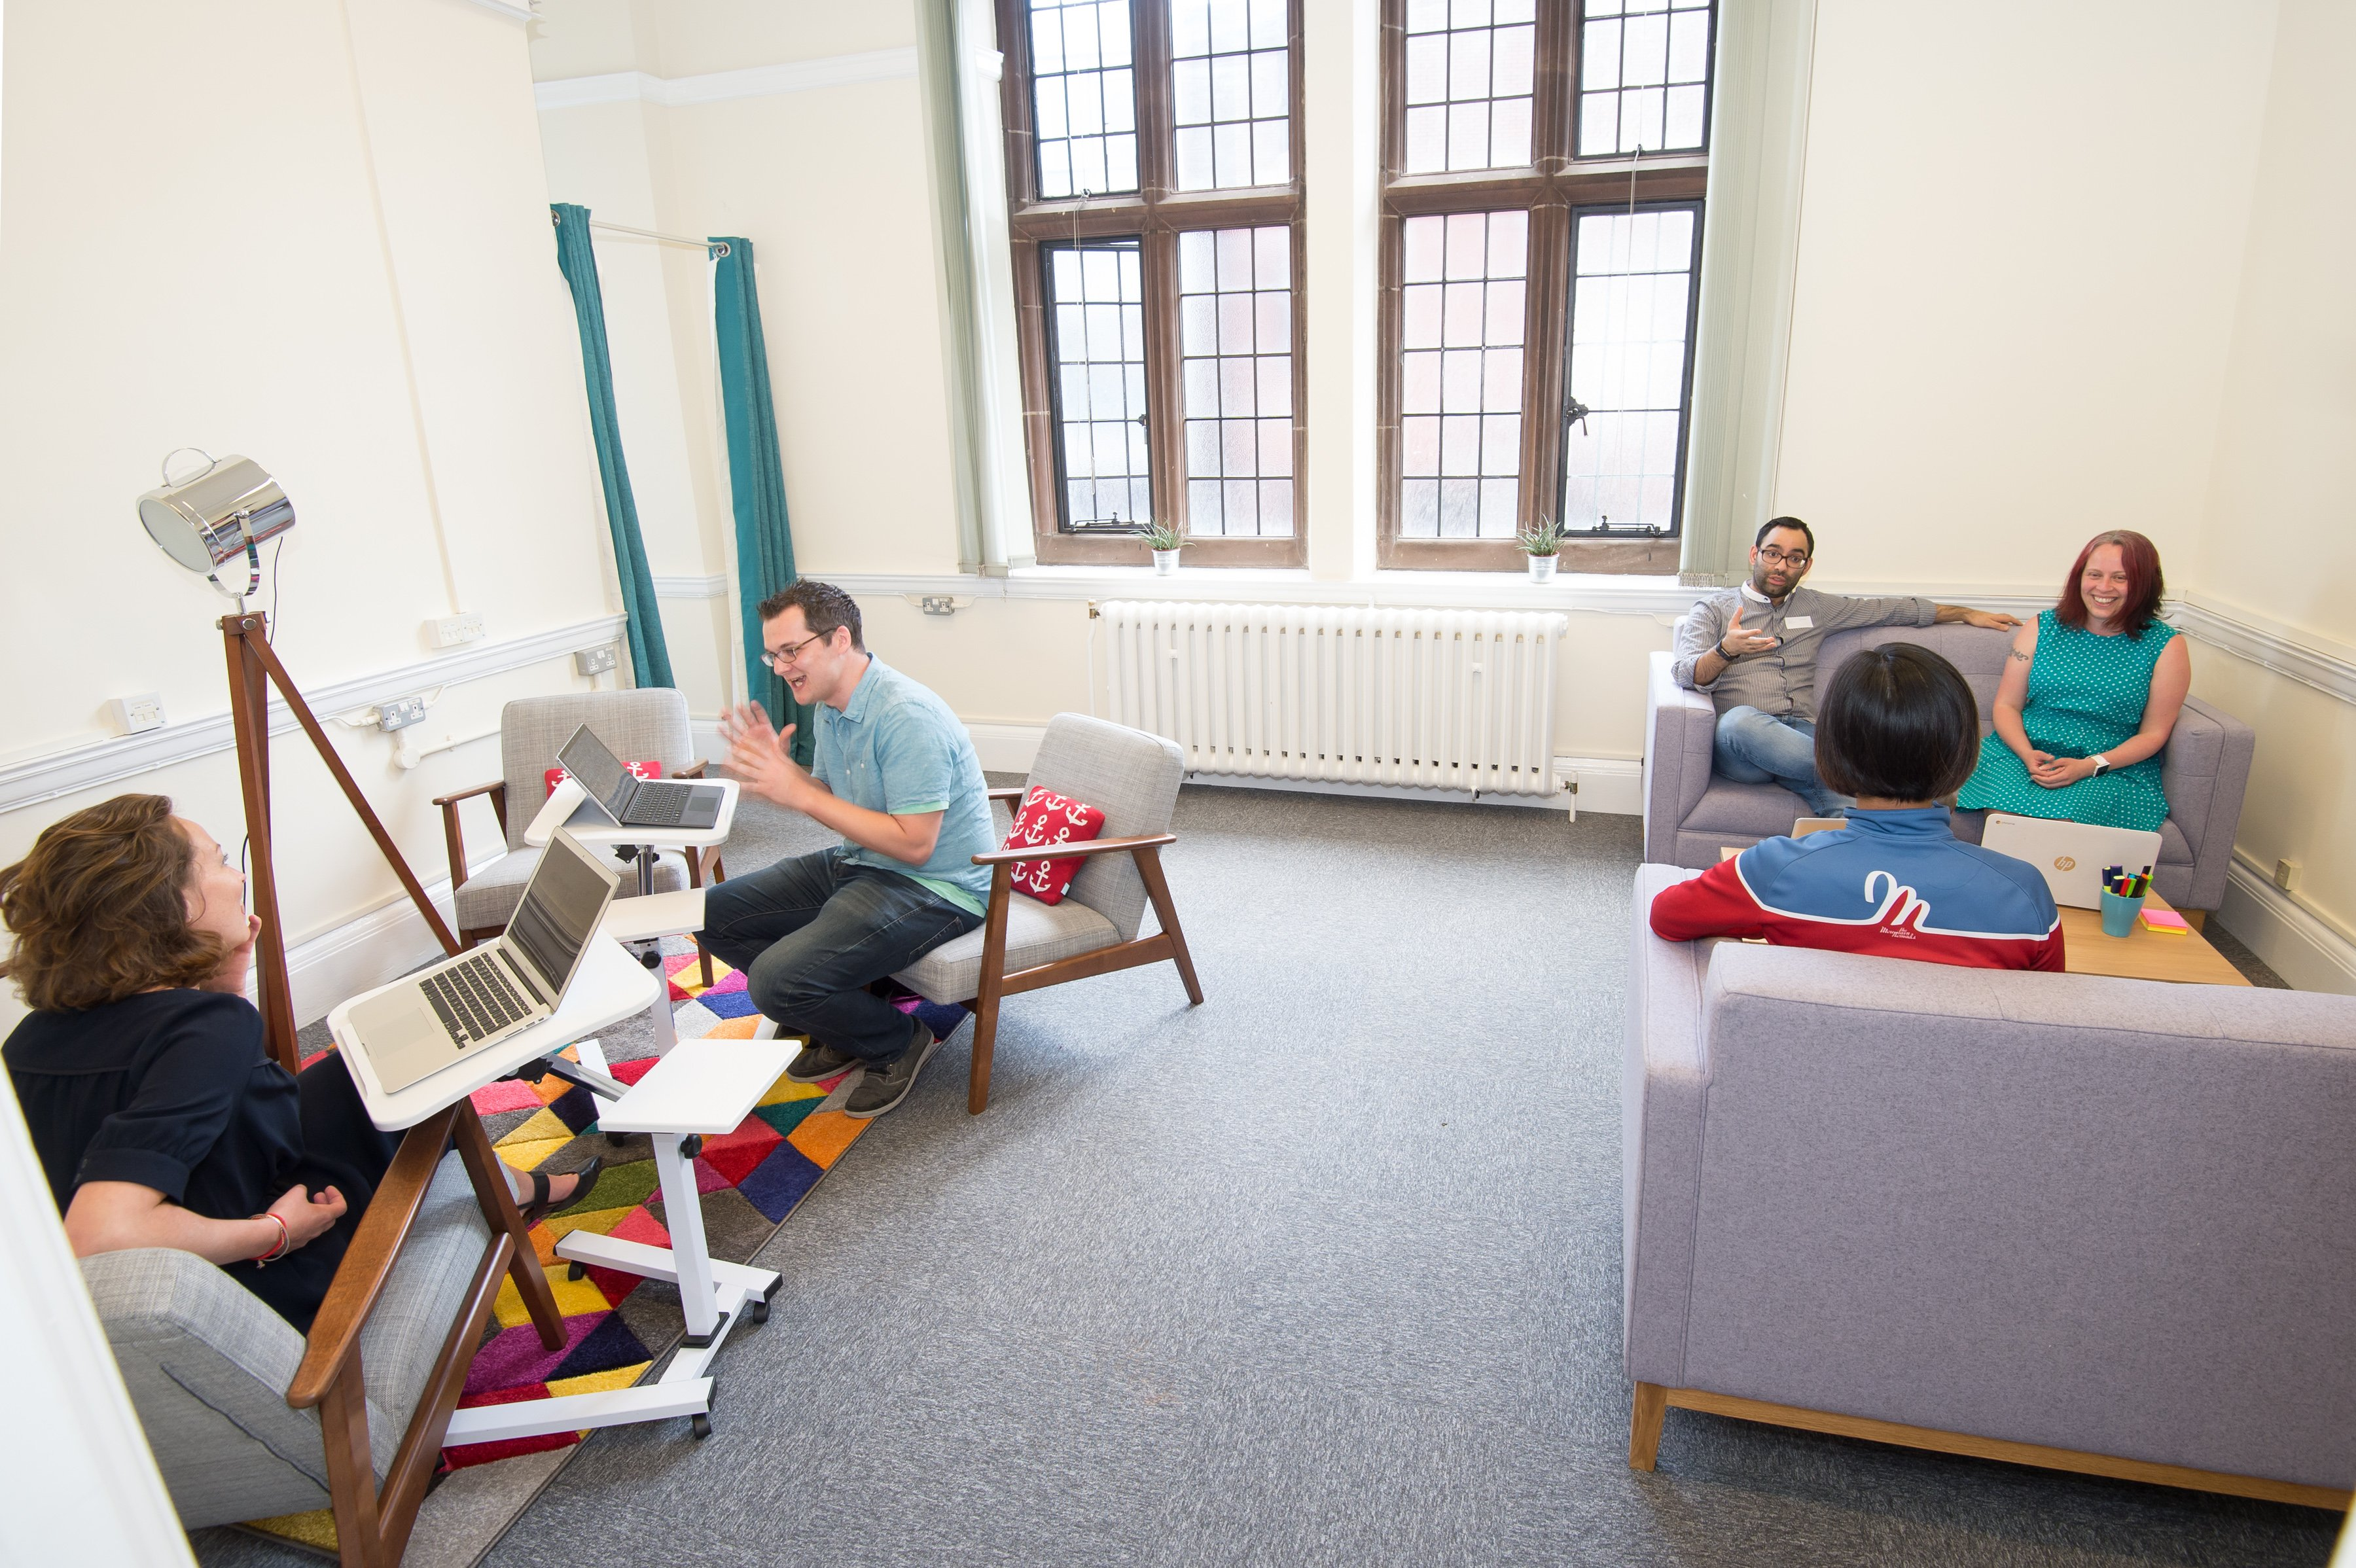 Buzzy Coworking Space